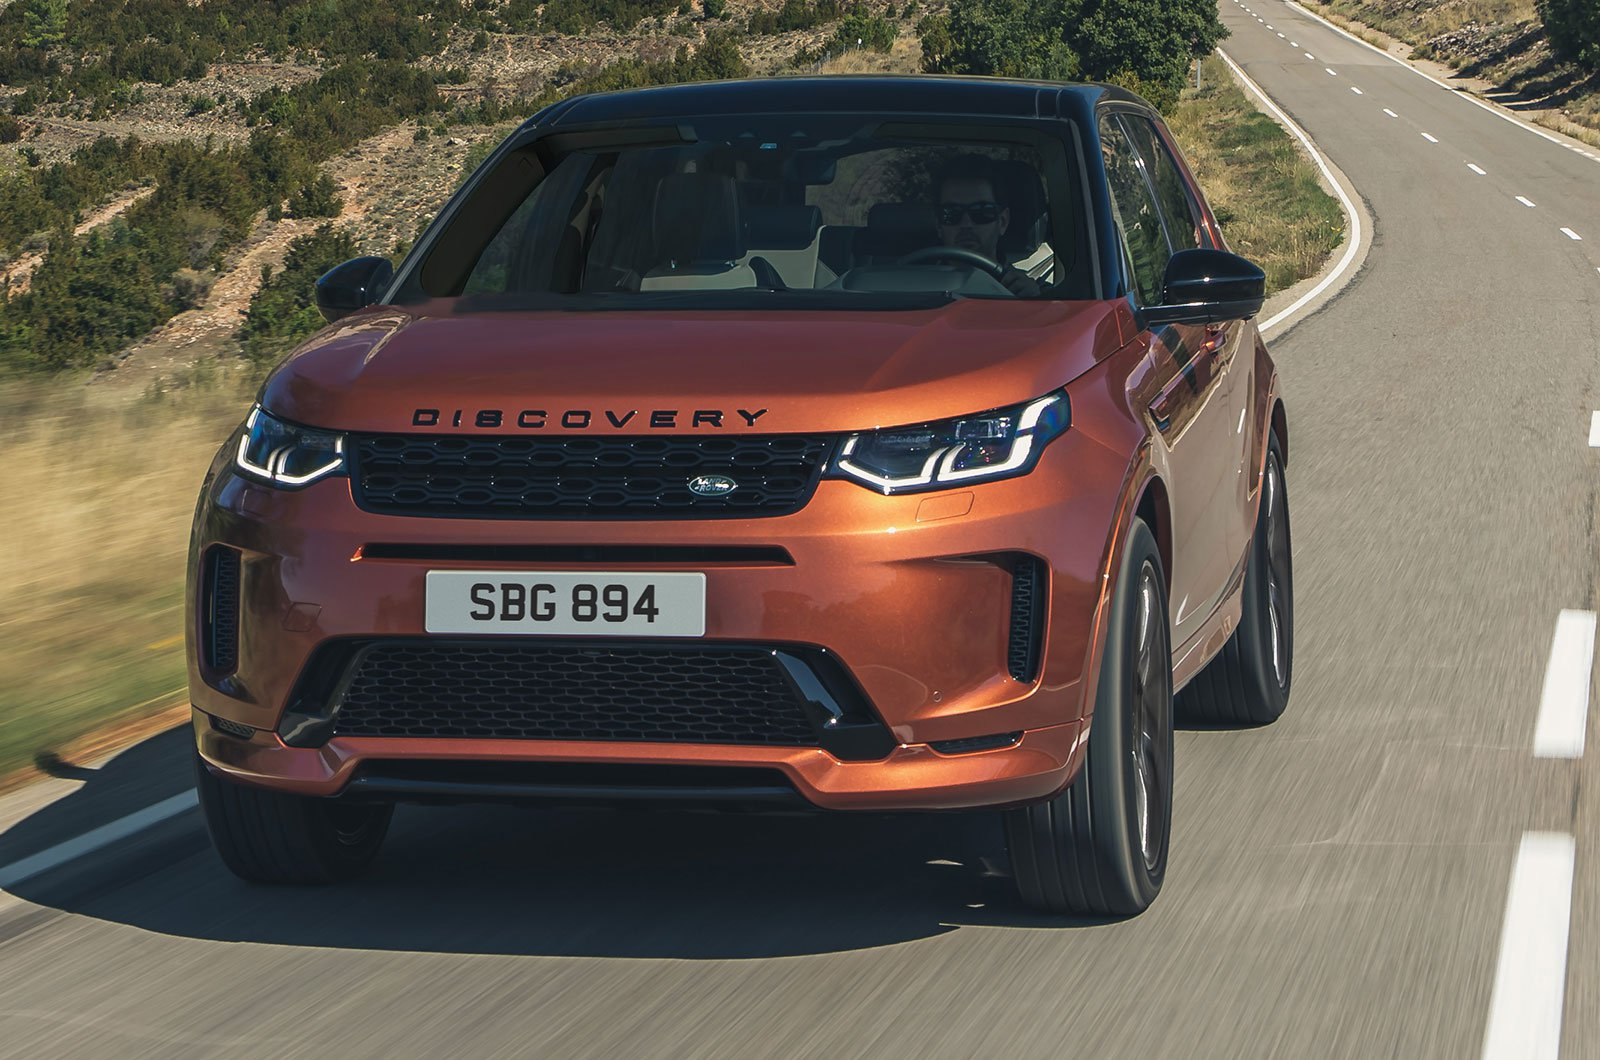 Land Rover Discovery Sport Model Year 2021 front